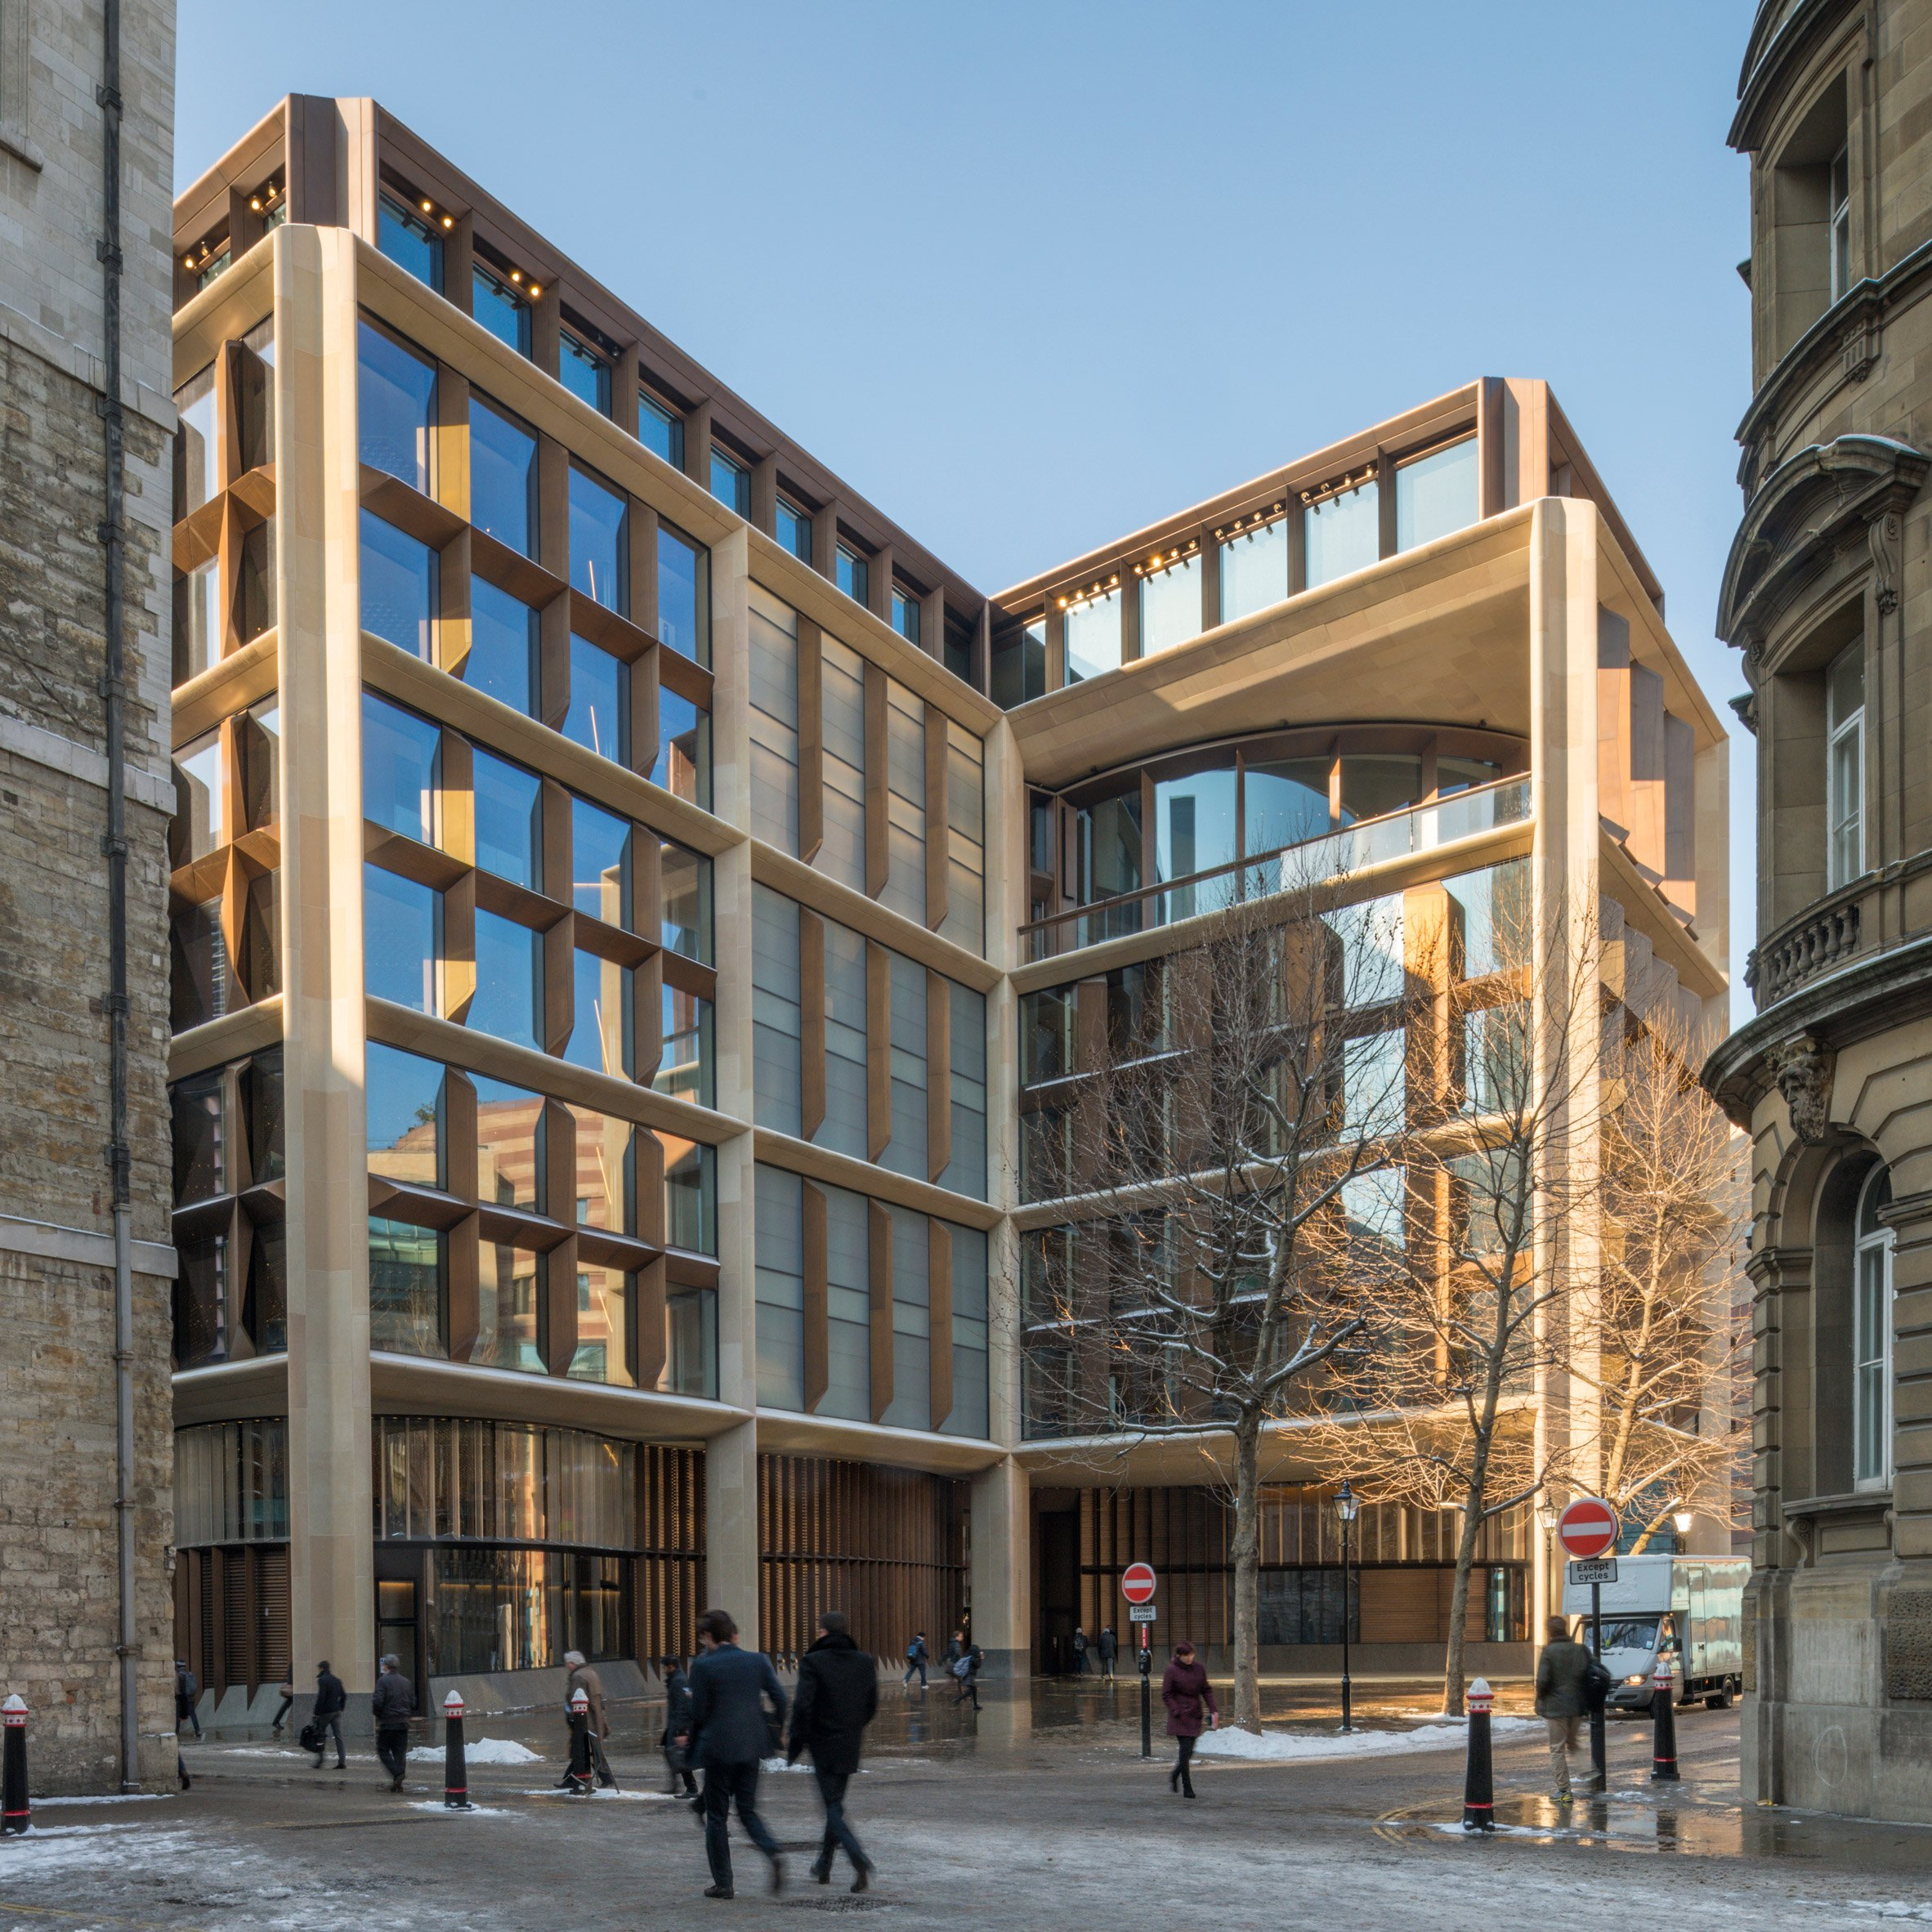 Foster + Partners' Bloomberg HQ wins 2018 Stirling Prize